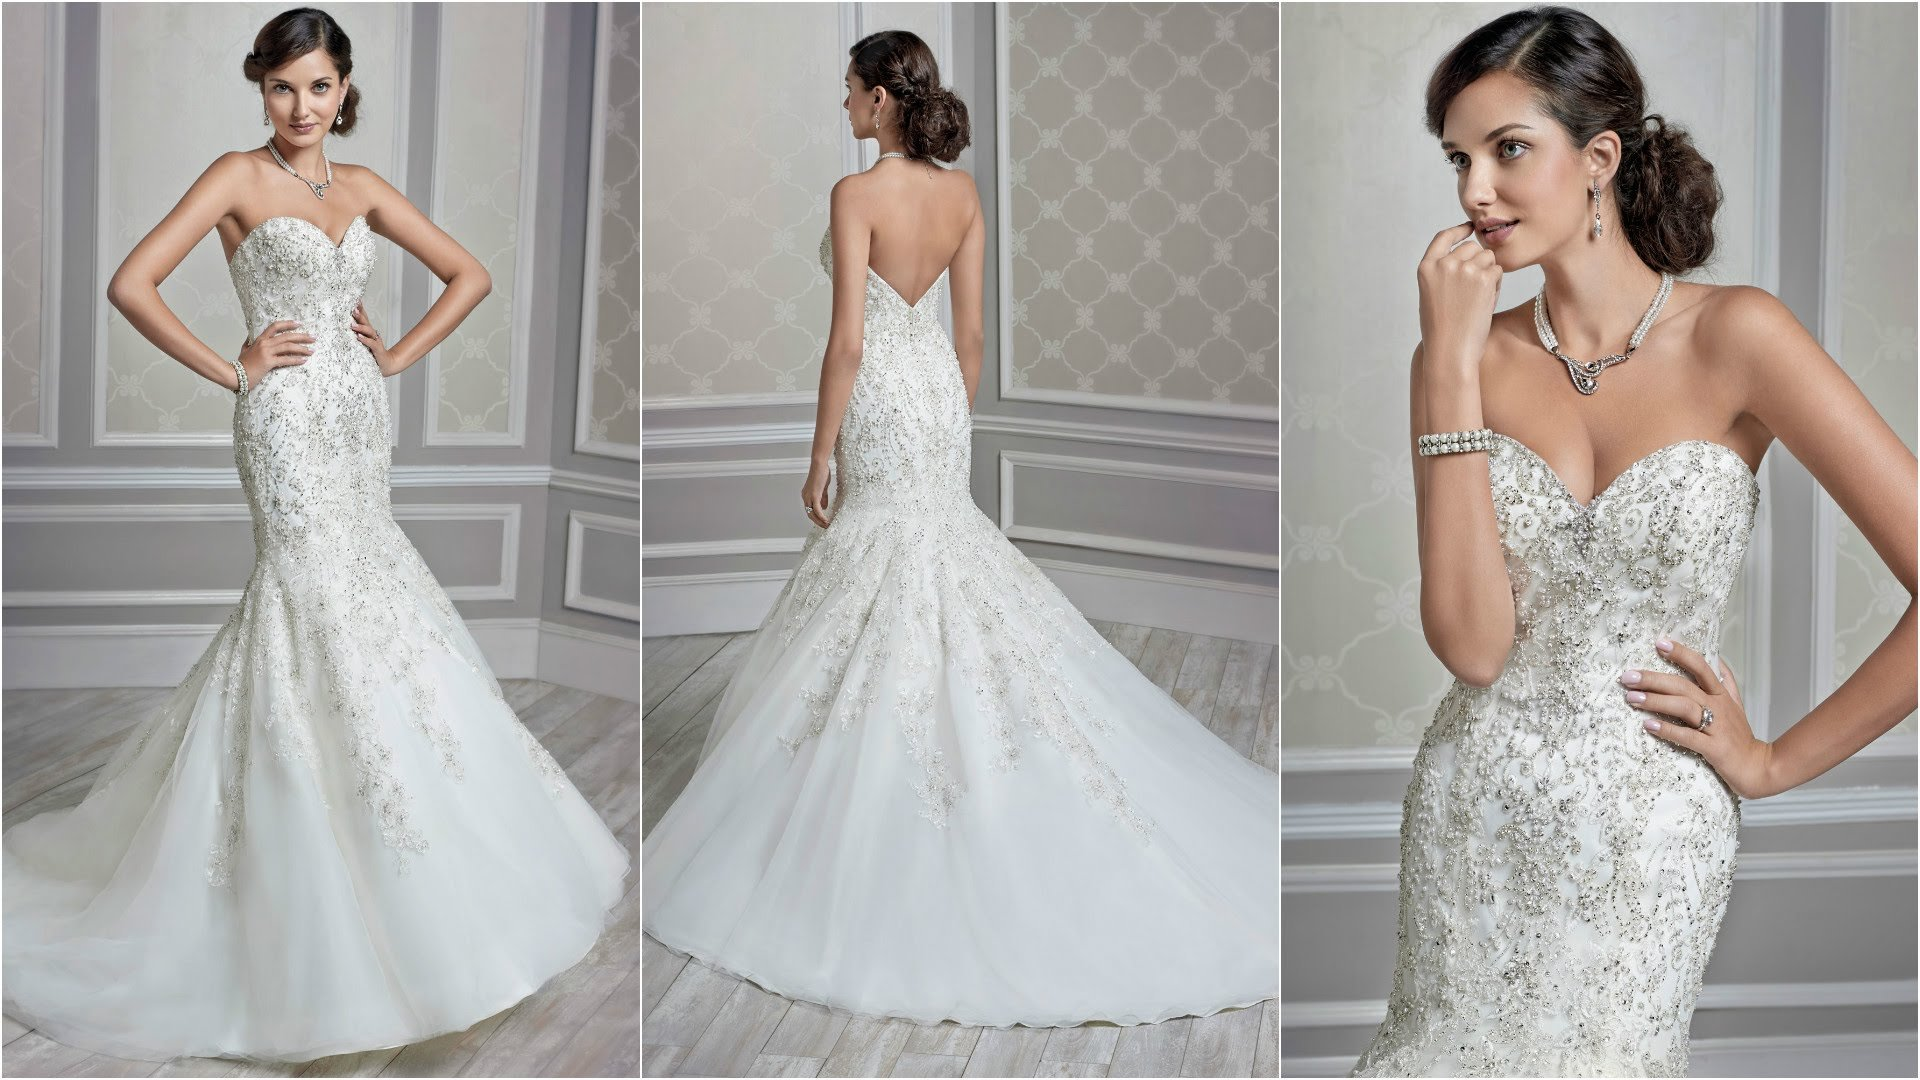 How to Choose a Wedding Dress: The Secrets of the Perfect ...